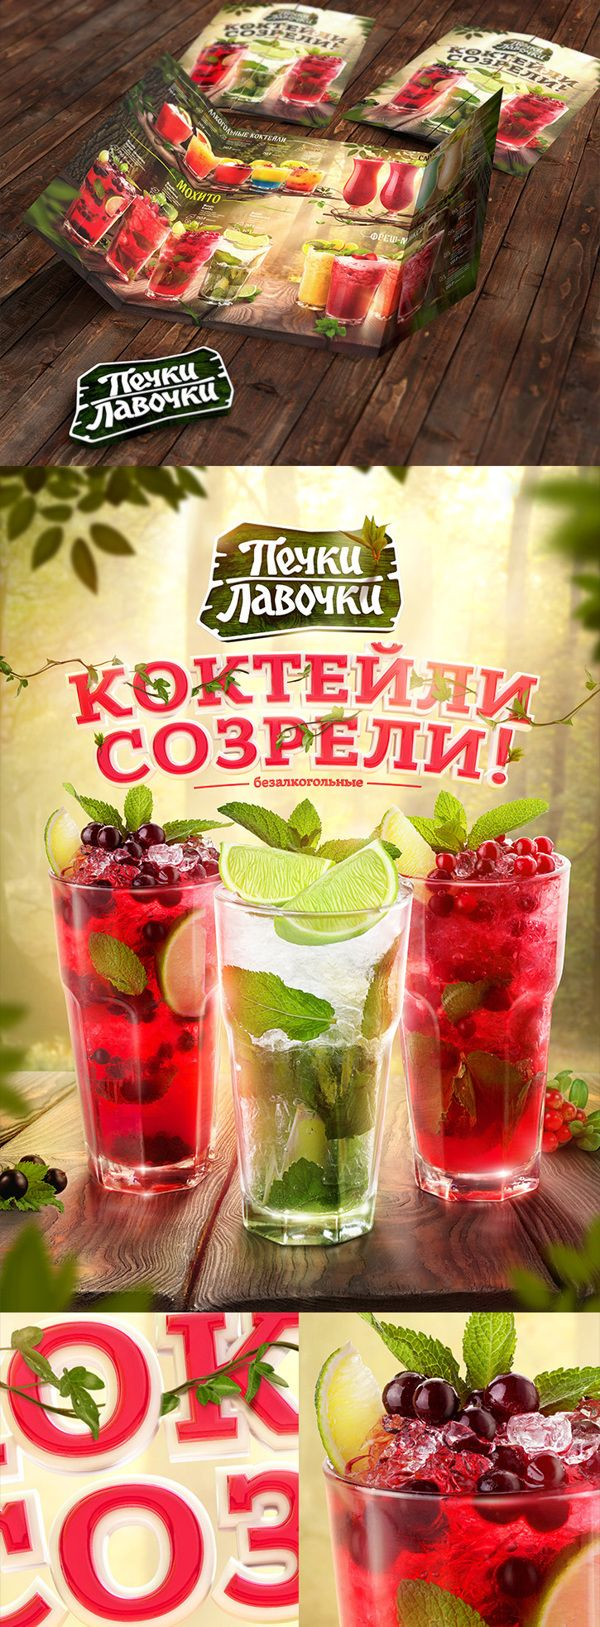 Summer cocktails | Menu and Advertising by Pasha Marin, via Behance